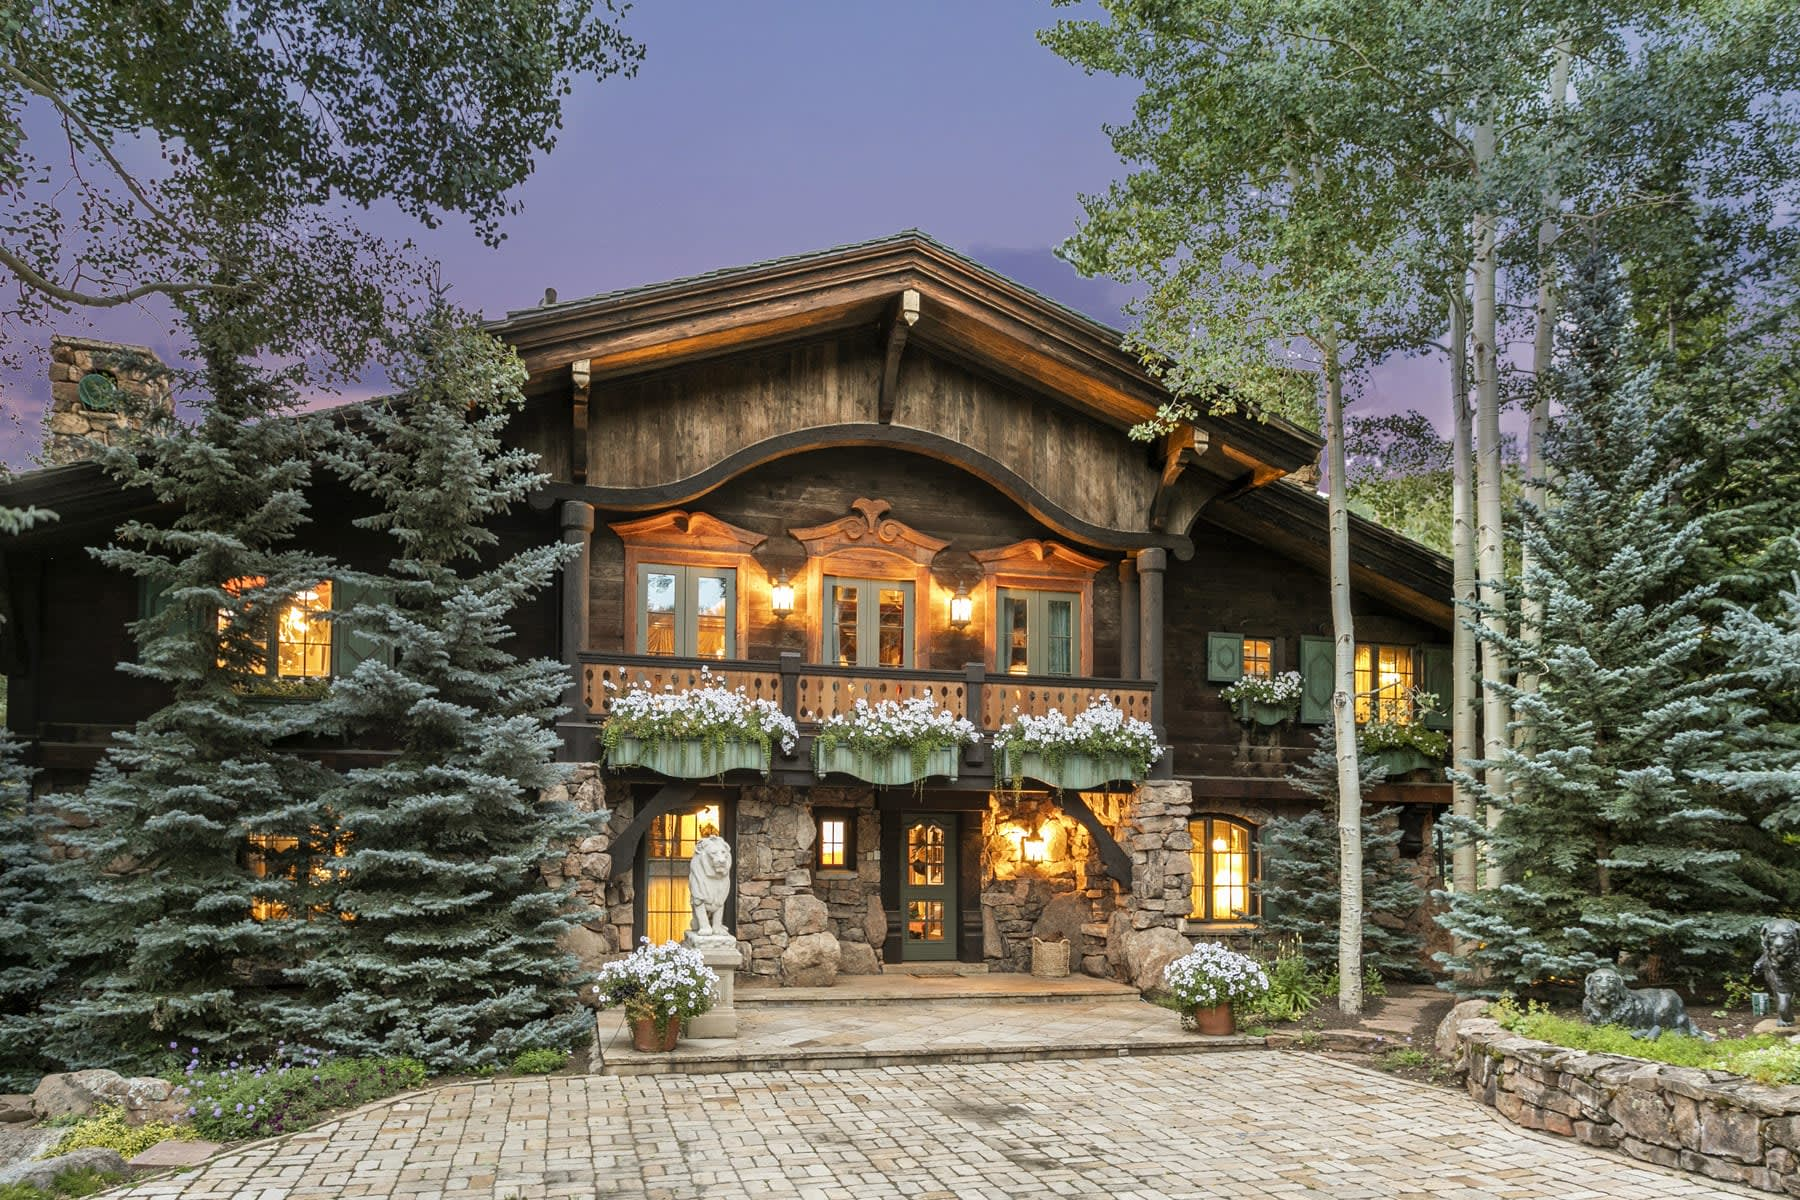 Vail's iconic 375 Mill Creek Circle chalet sells sight unseen for the record-breaking price of $24,000,000